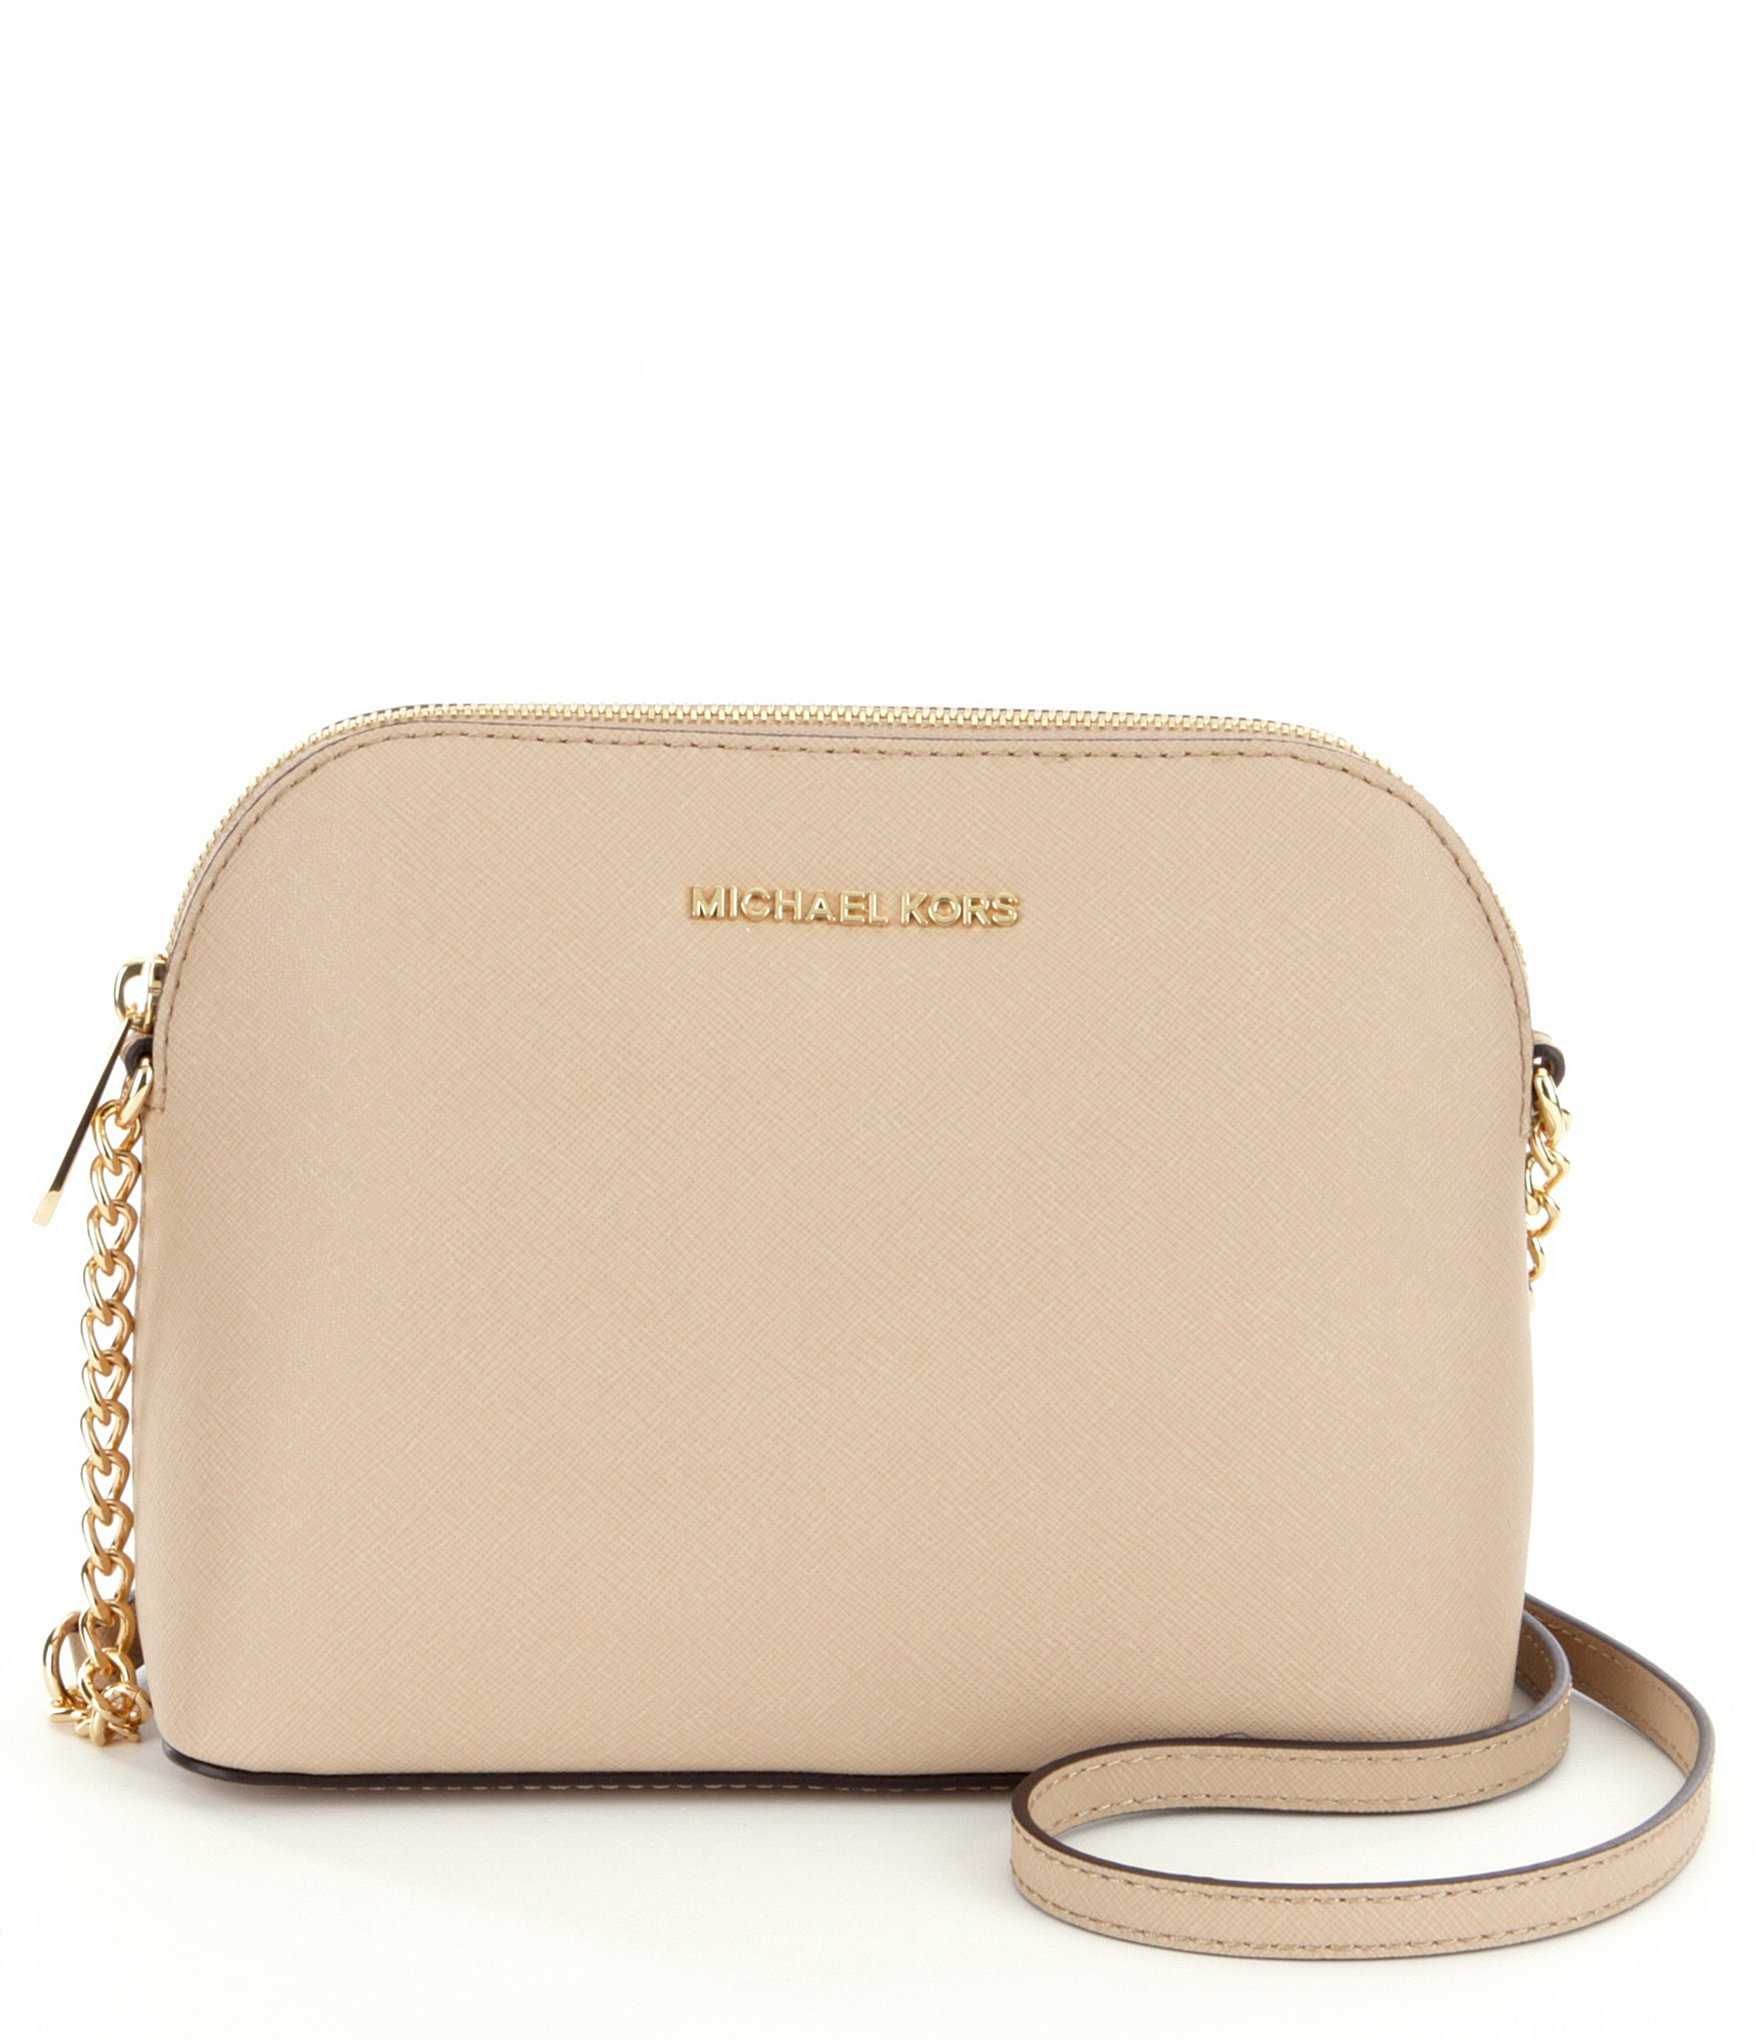 e776ff88c4503 Gallery. Previously sold at  Dillard s · Women s Michael Kors Cindy Women s  Leather Bags ...